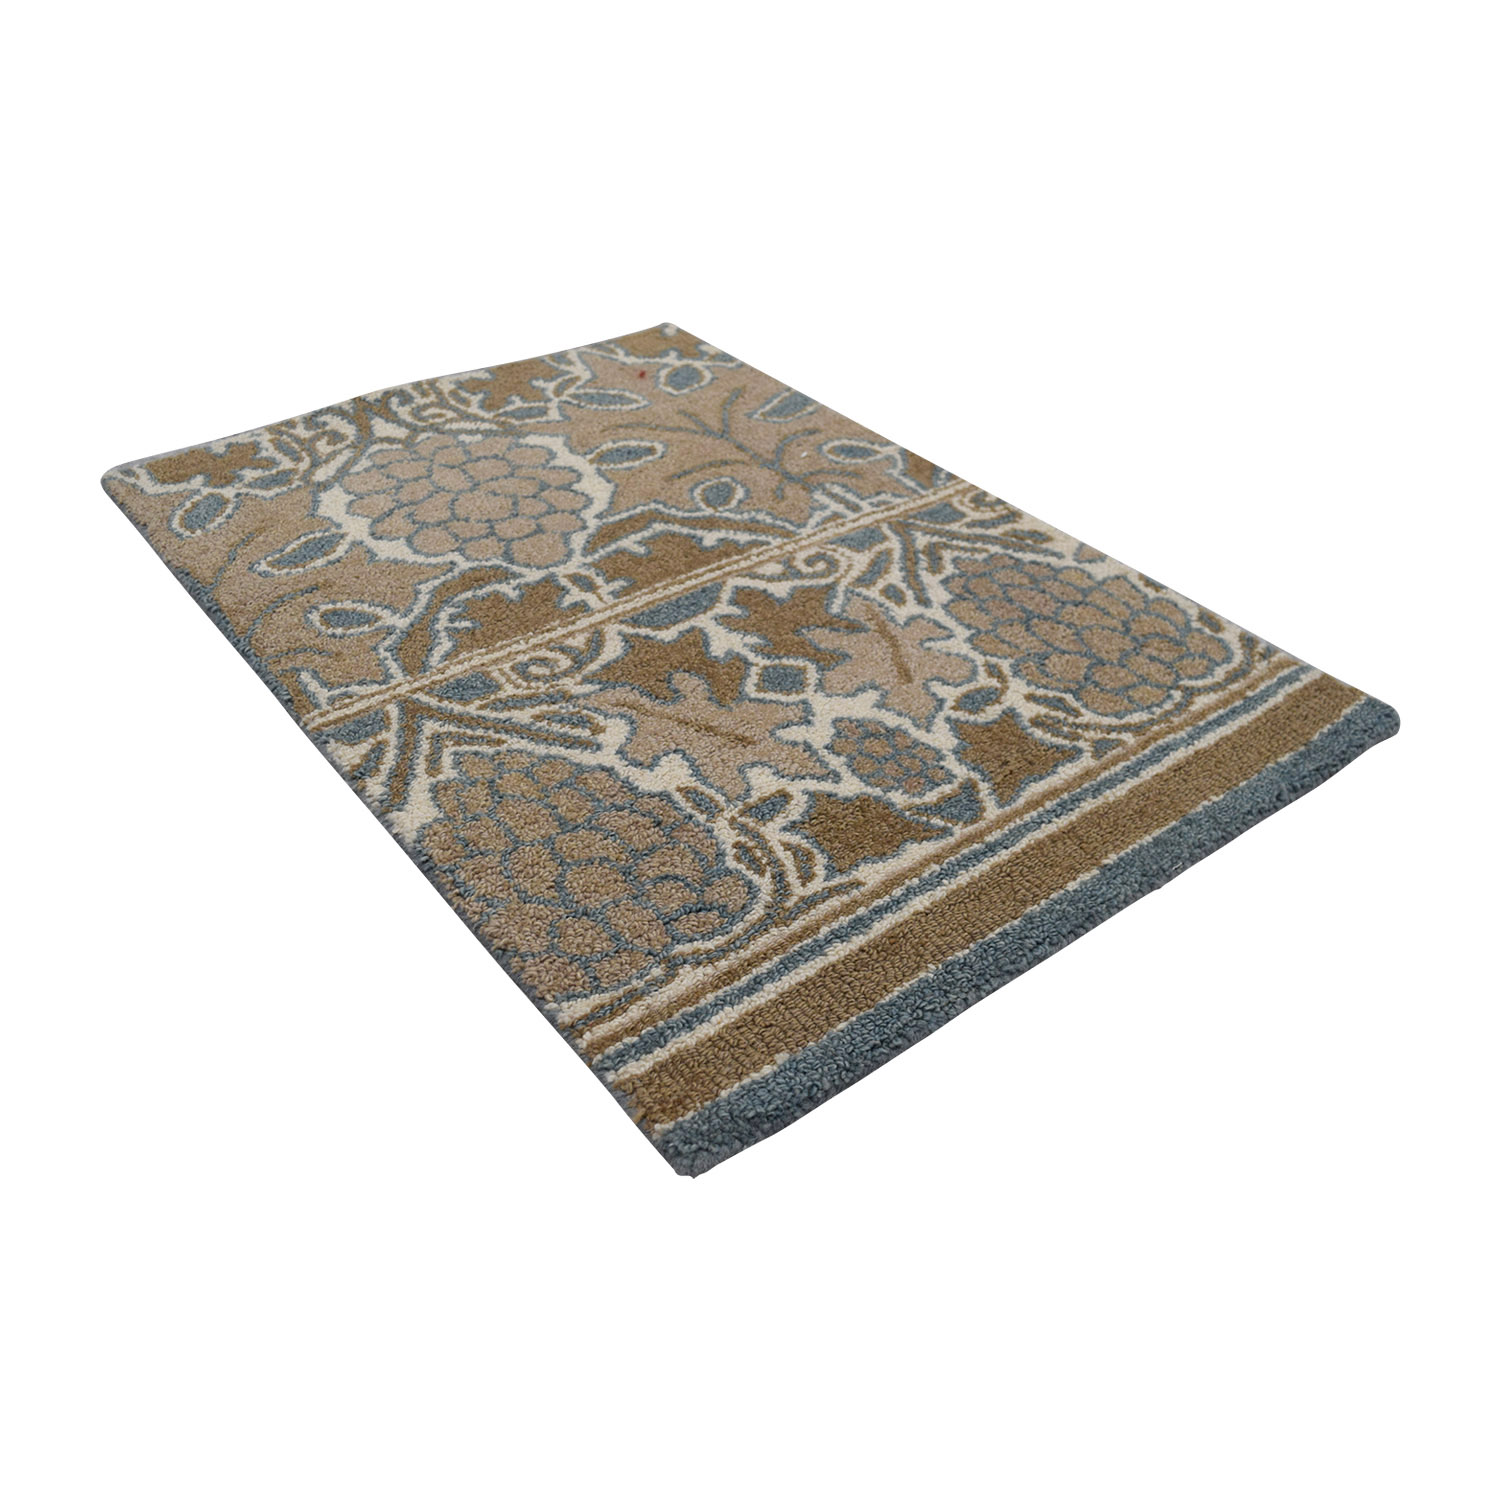 Obeetee Obeetee Tan and Blue Wool Rug price